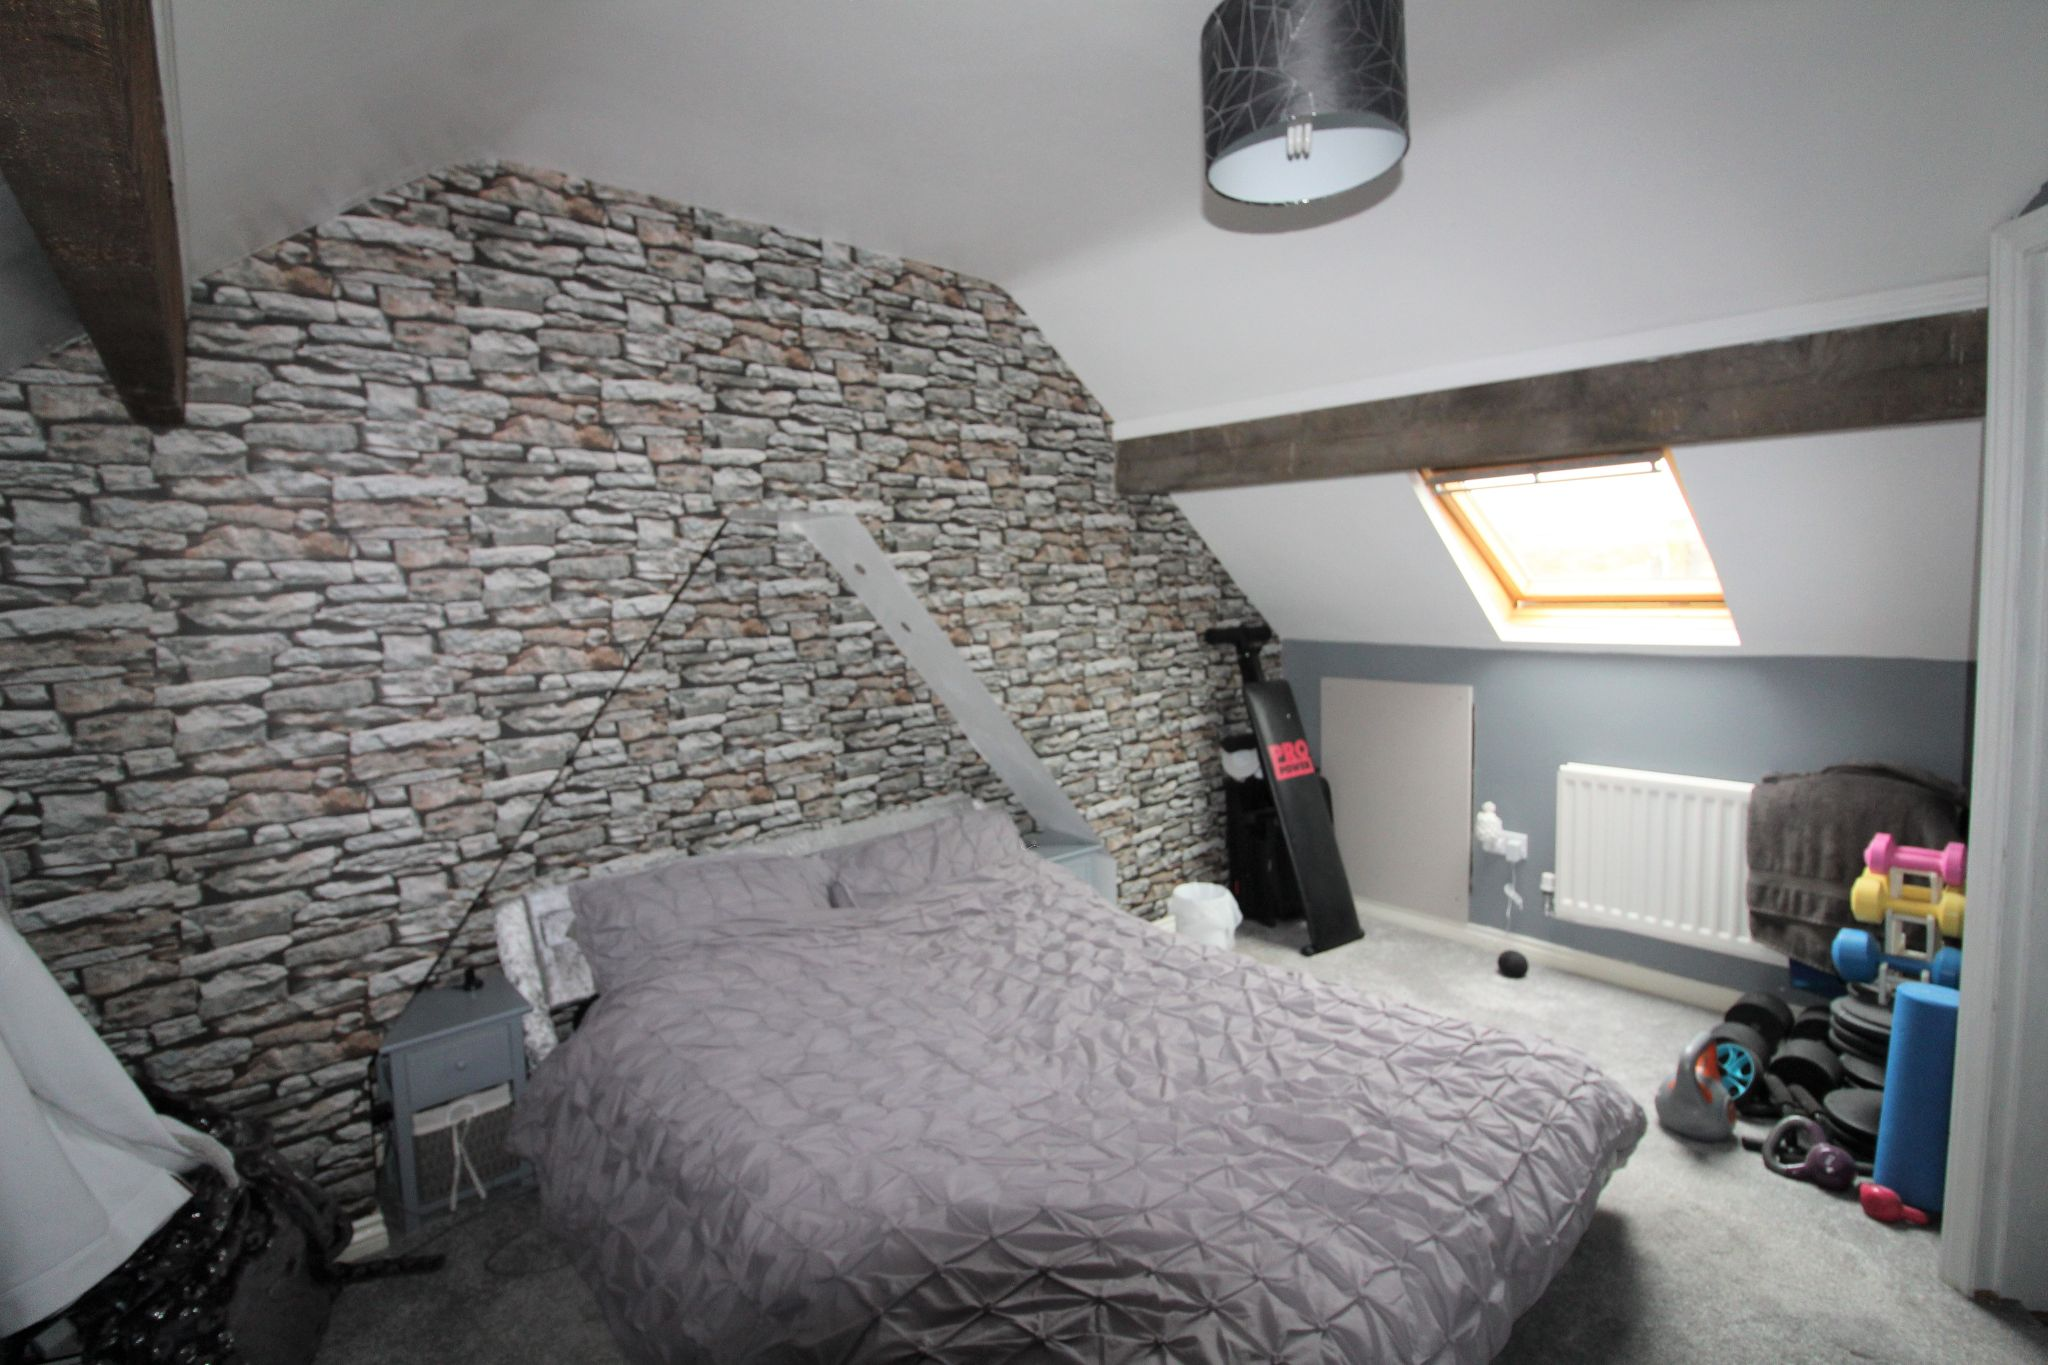 3 bedroom mid terraced house Sale Agreed in Roddymoor - Photograph 13.